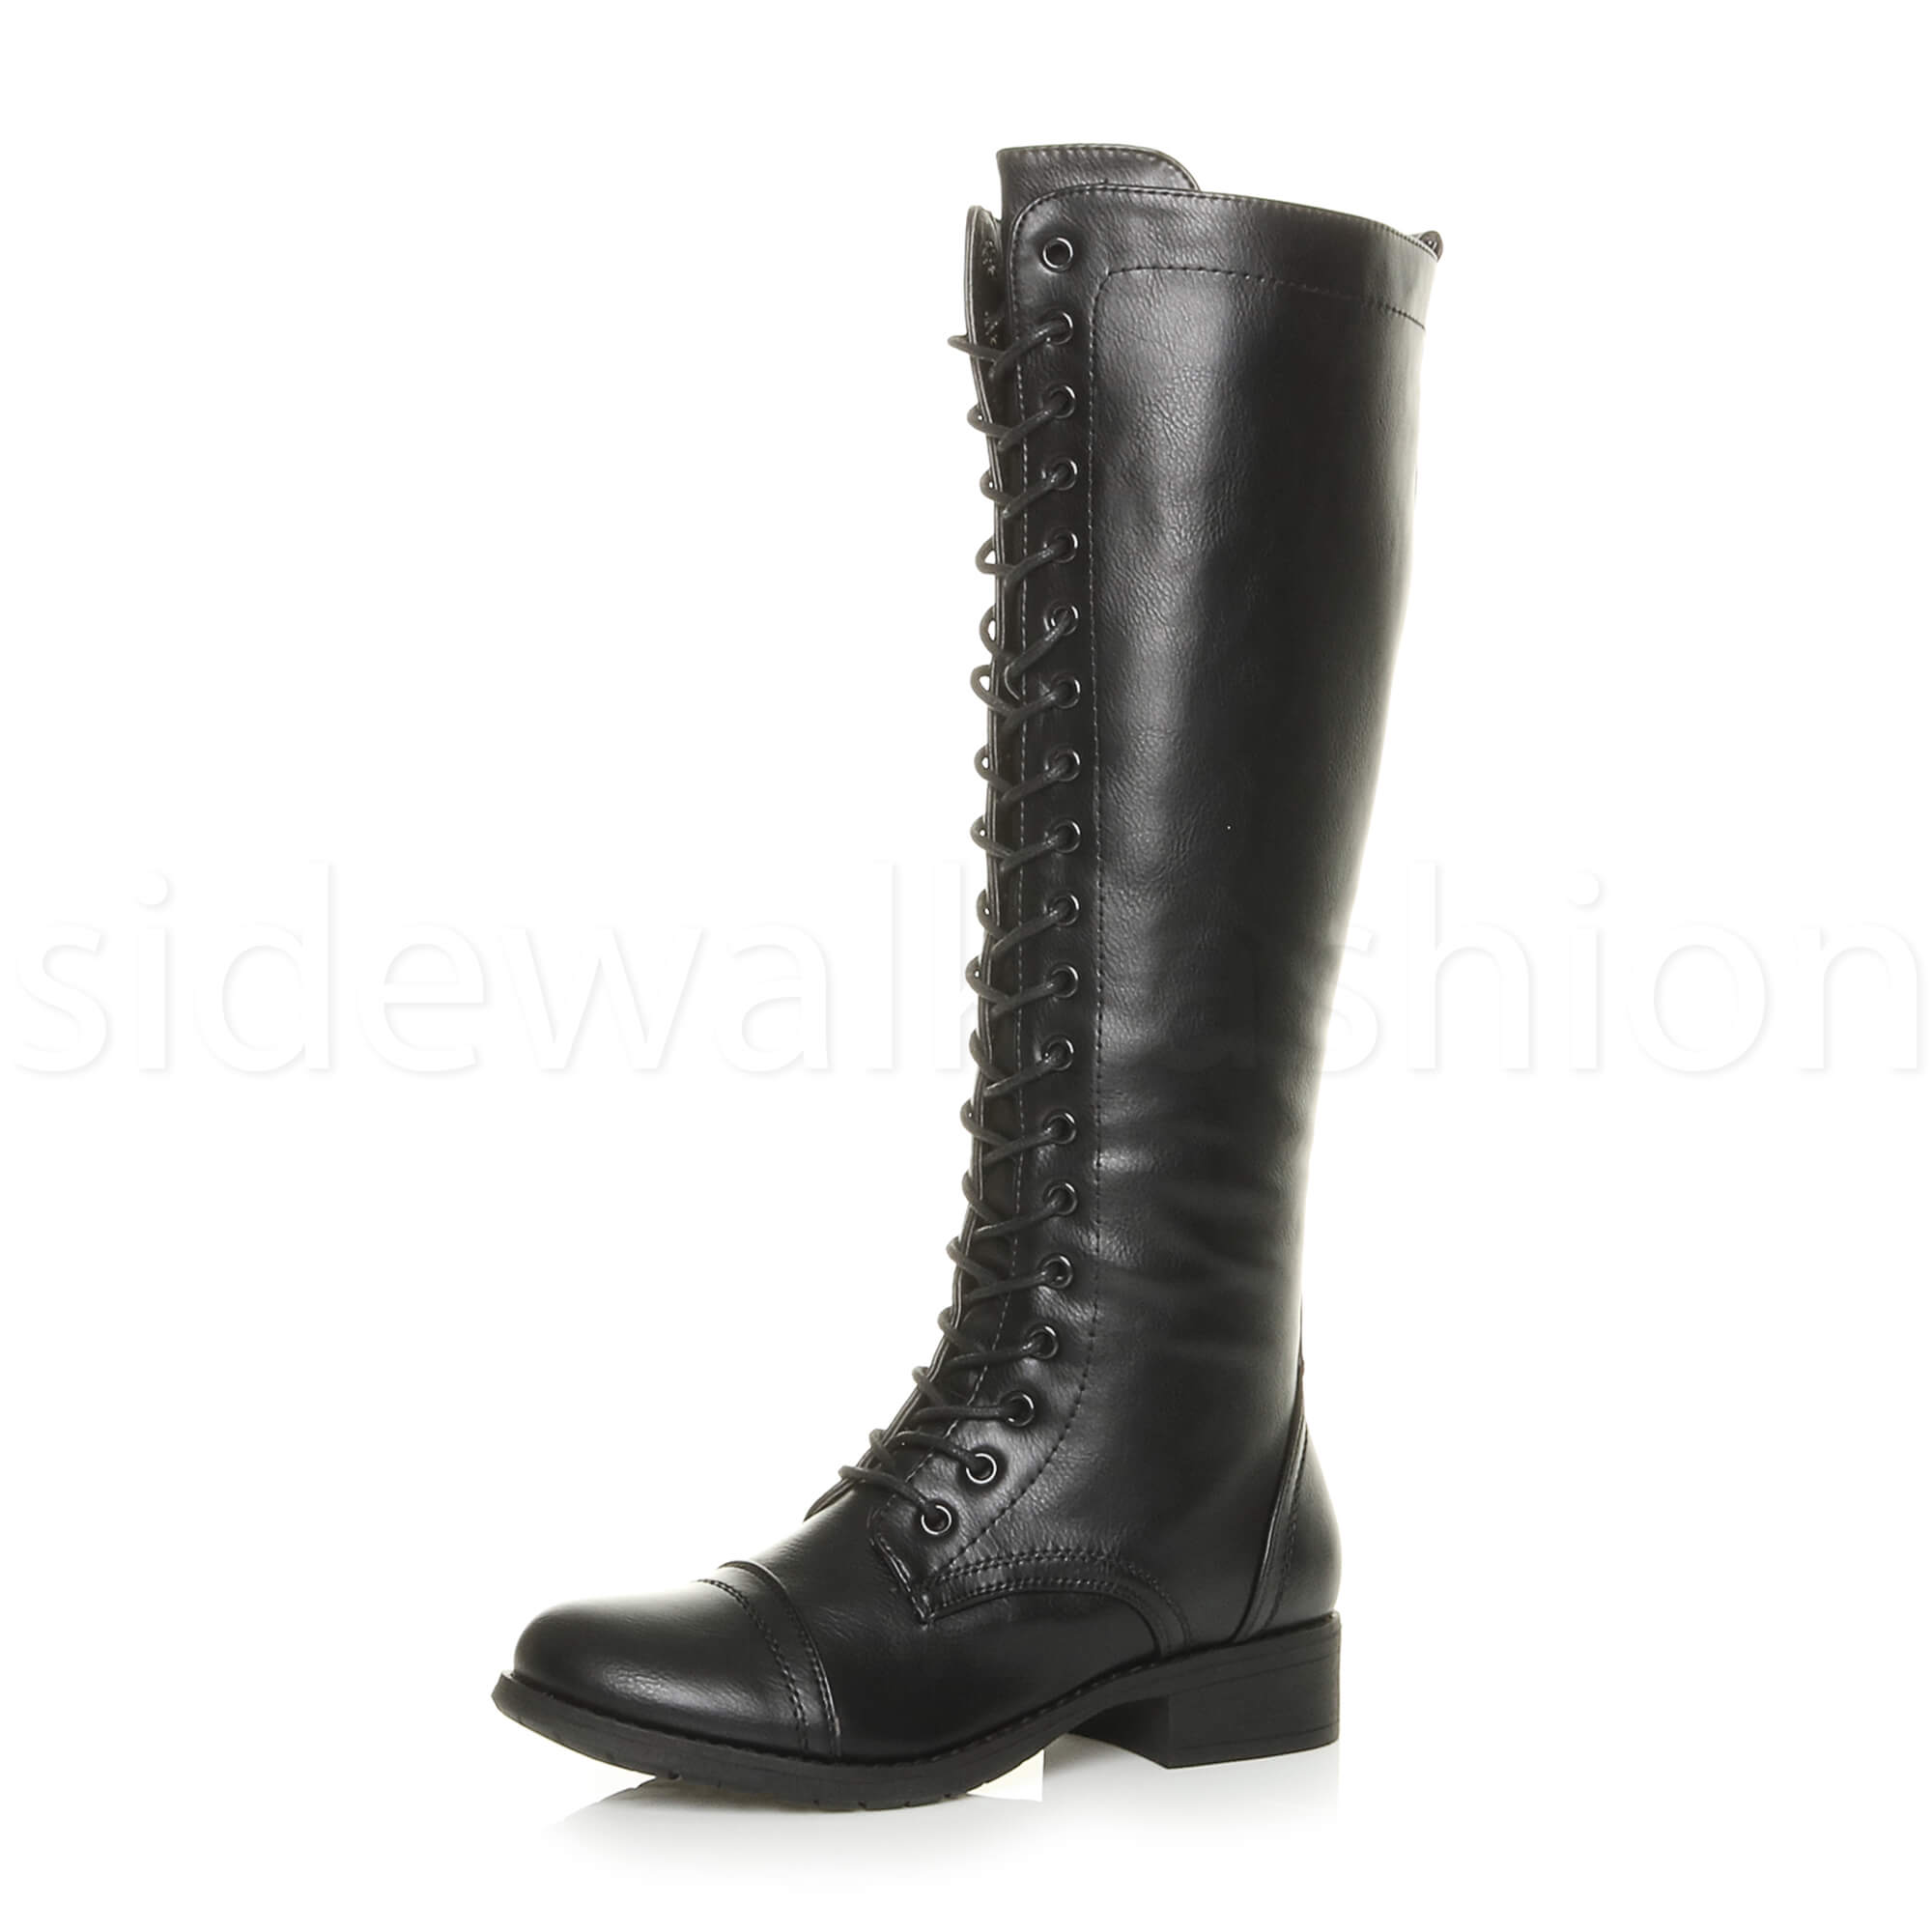 Synthetic Leather Block Med Heel Knee High Shoes Women's Boots Zip AU All Size